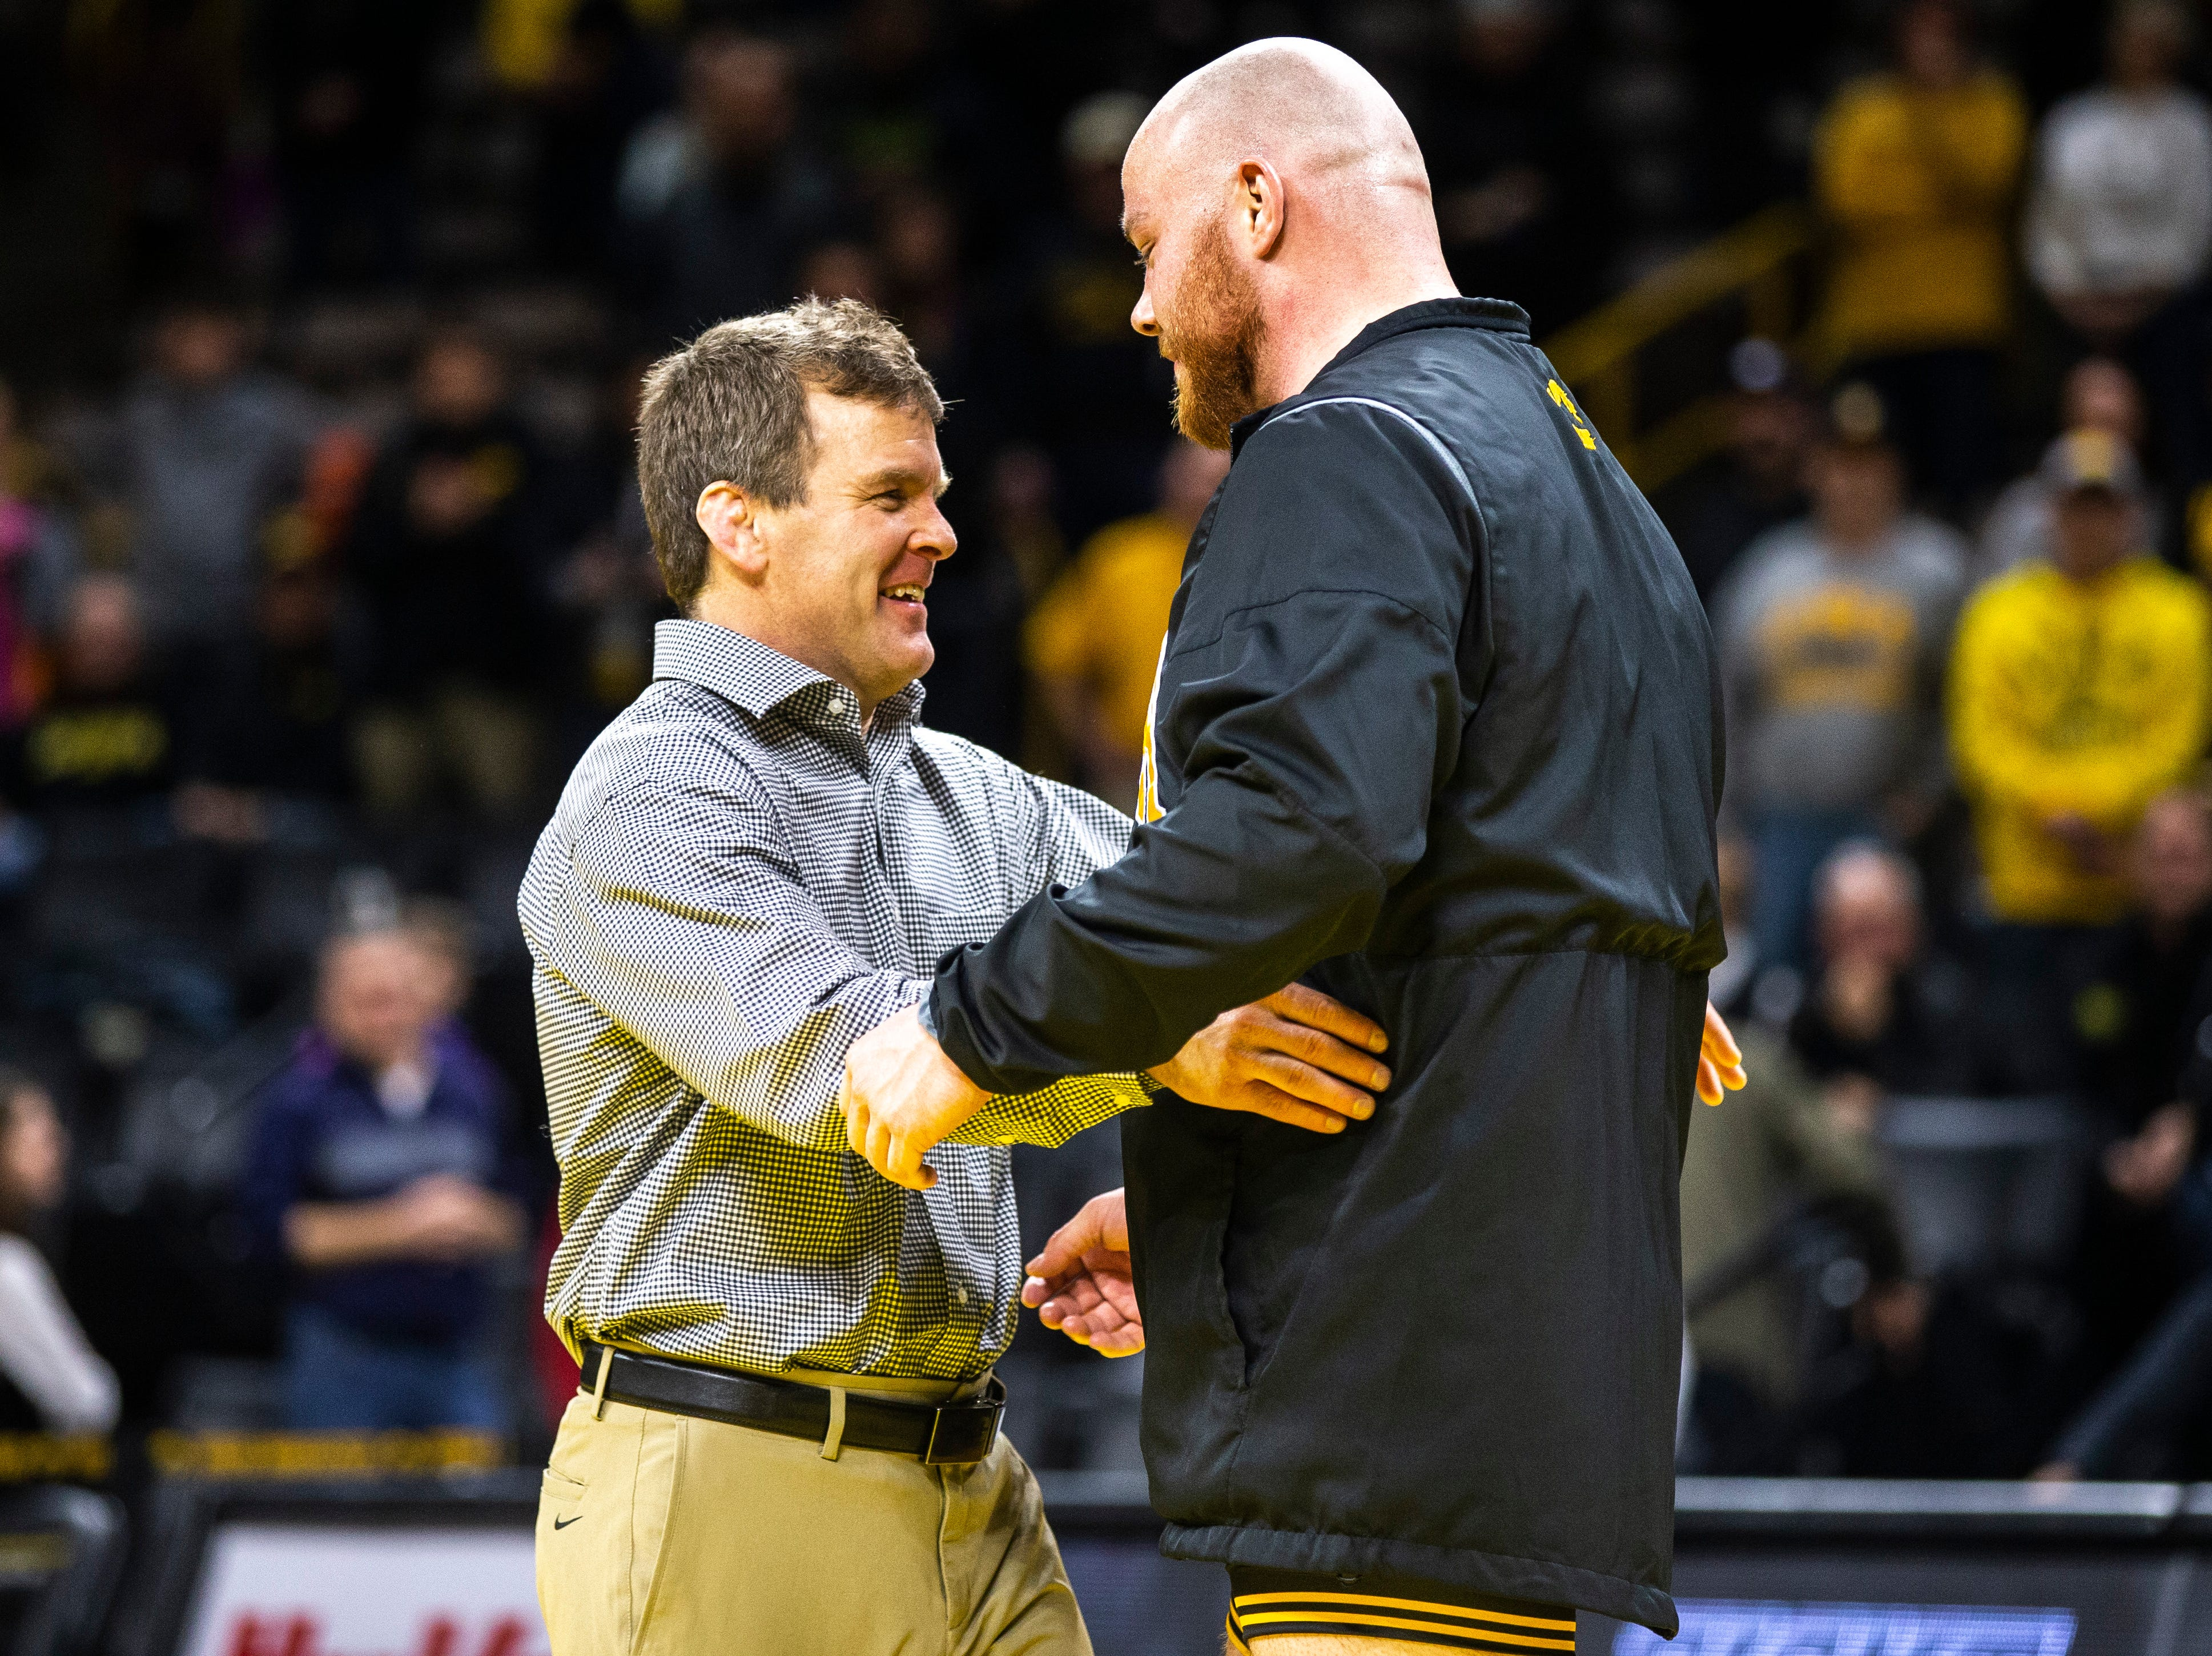 Iowa associate head coach Terry Brands embraces senior 285-pounder Sam Stoll during a NCAA Big Ten Conference wrestling dual on Friday, Feb. 15, 2019 at Carver-Hawkeye Arena in Iowa City, Iowa.